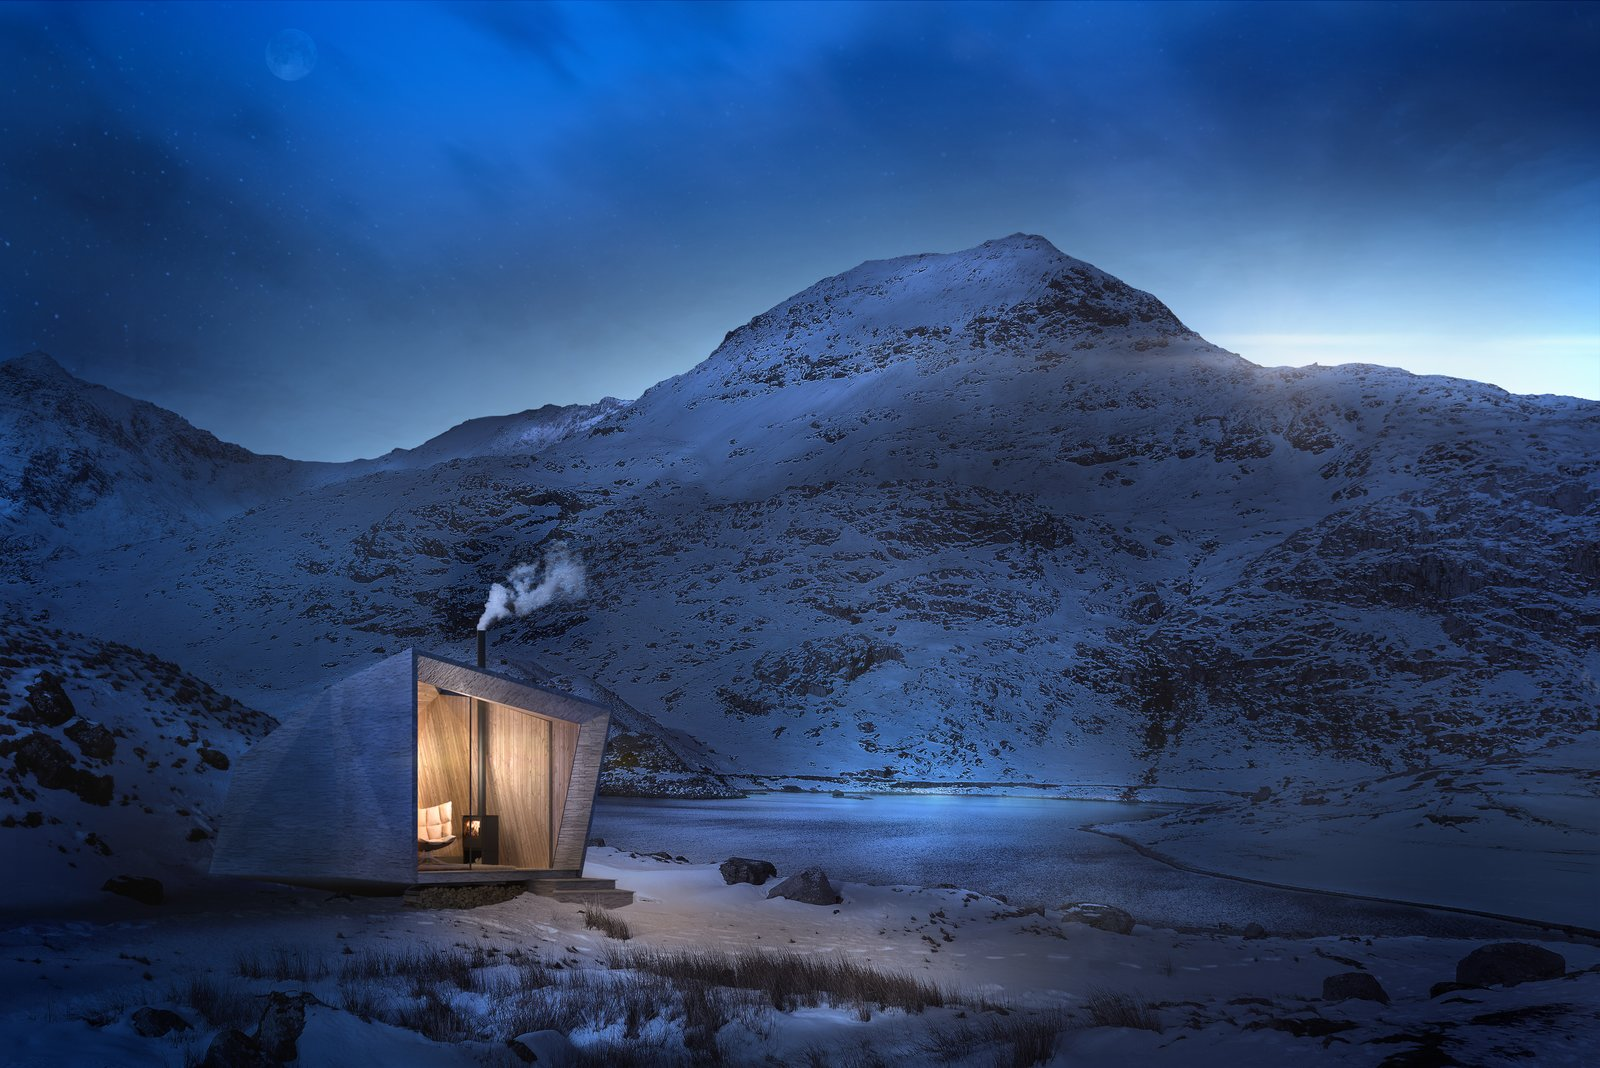 Arthur's Cave, by Miller Kendrick Architects, references King Arthur and will be insulated with locally sourced sheep's wool.